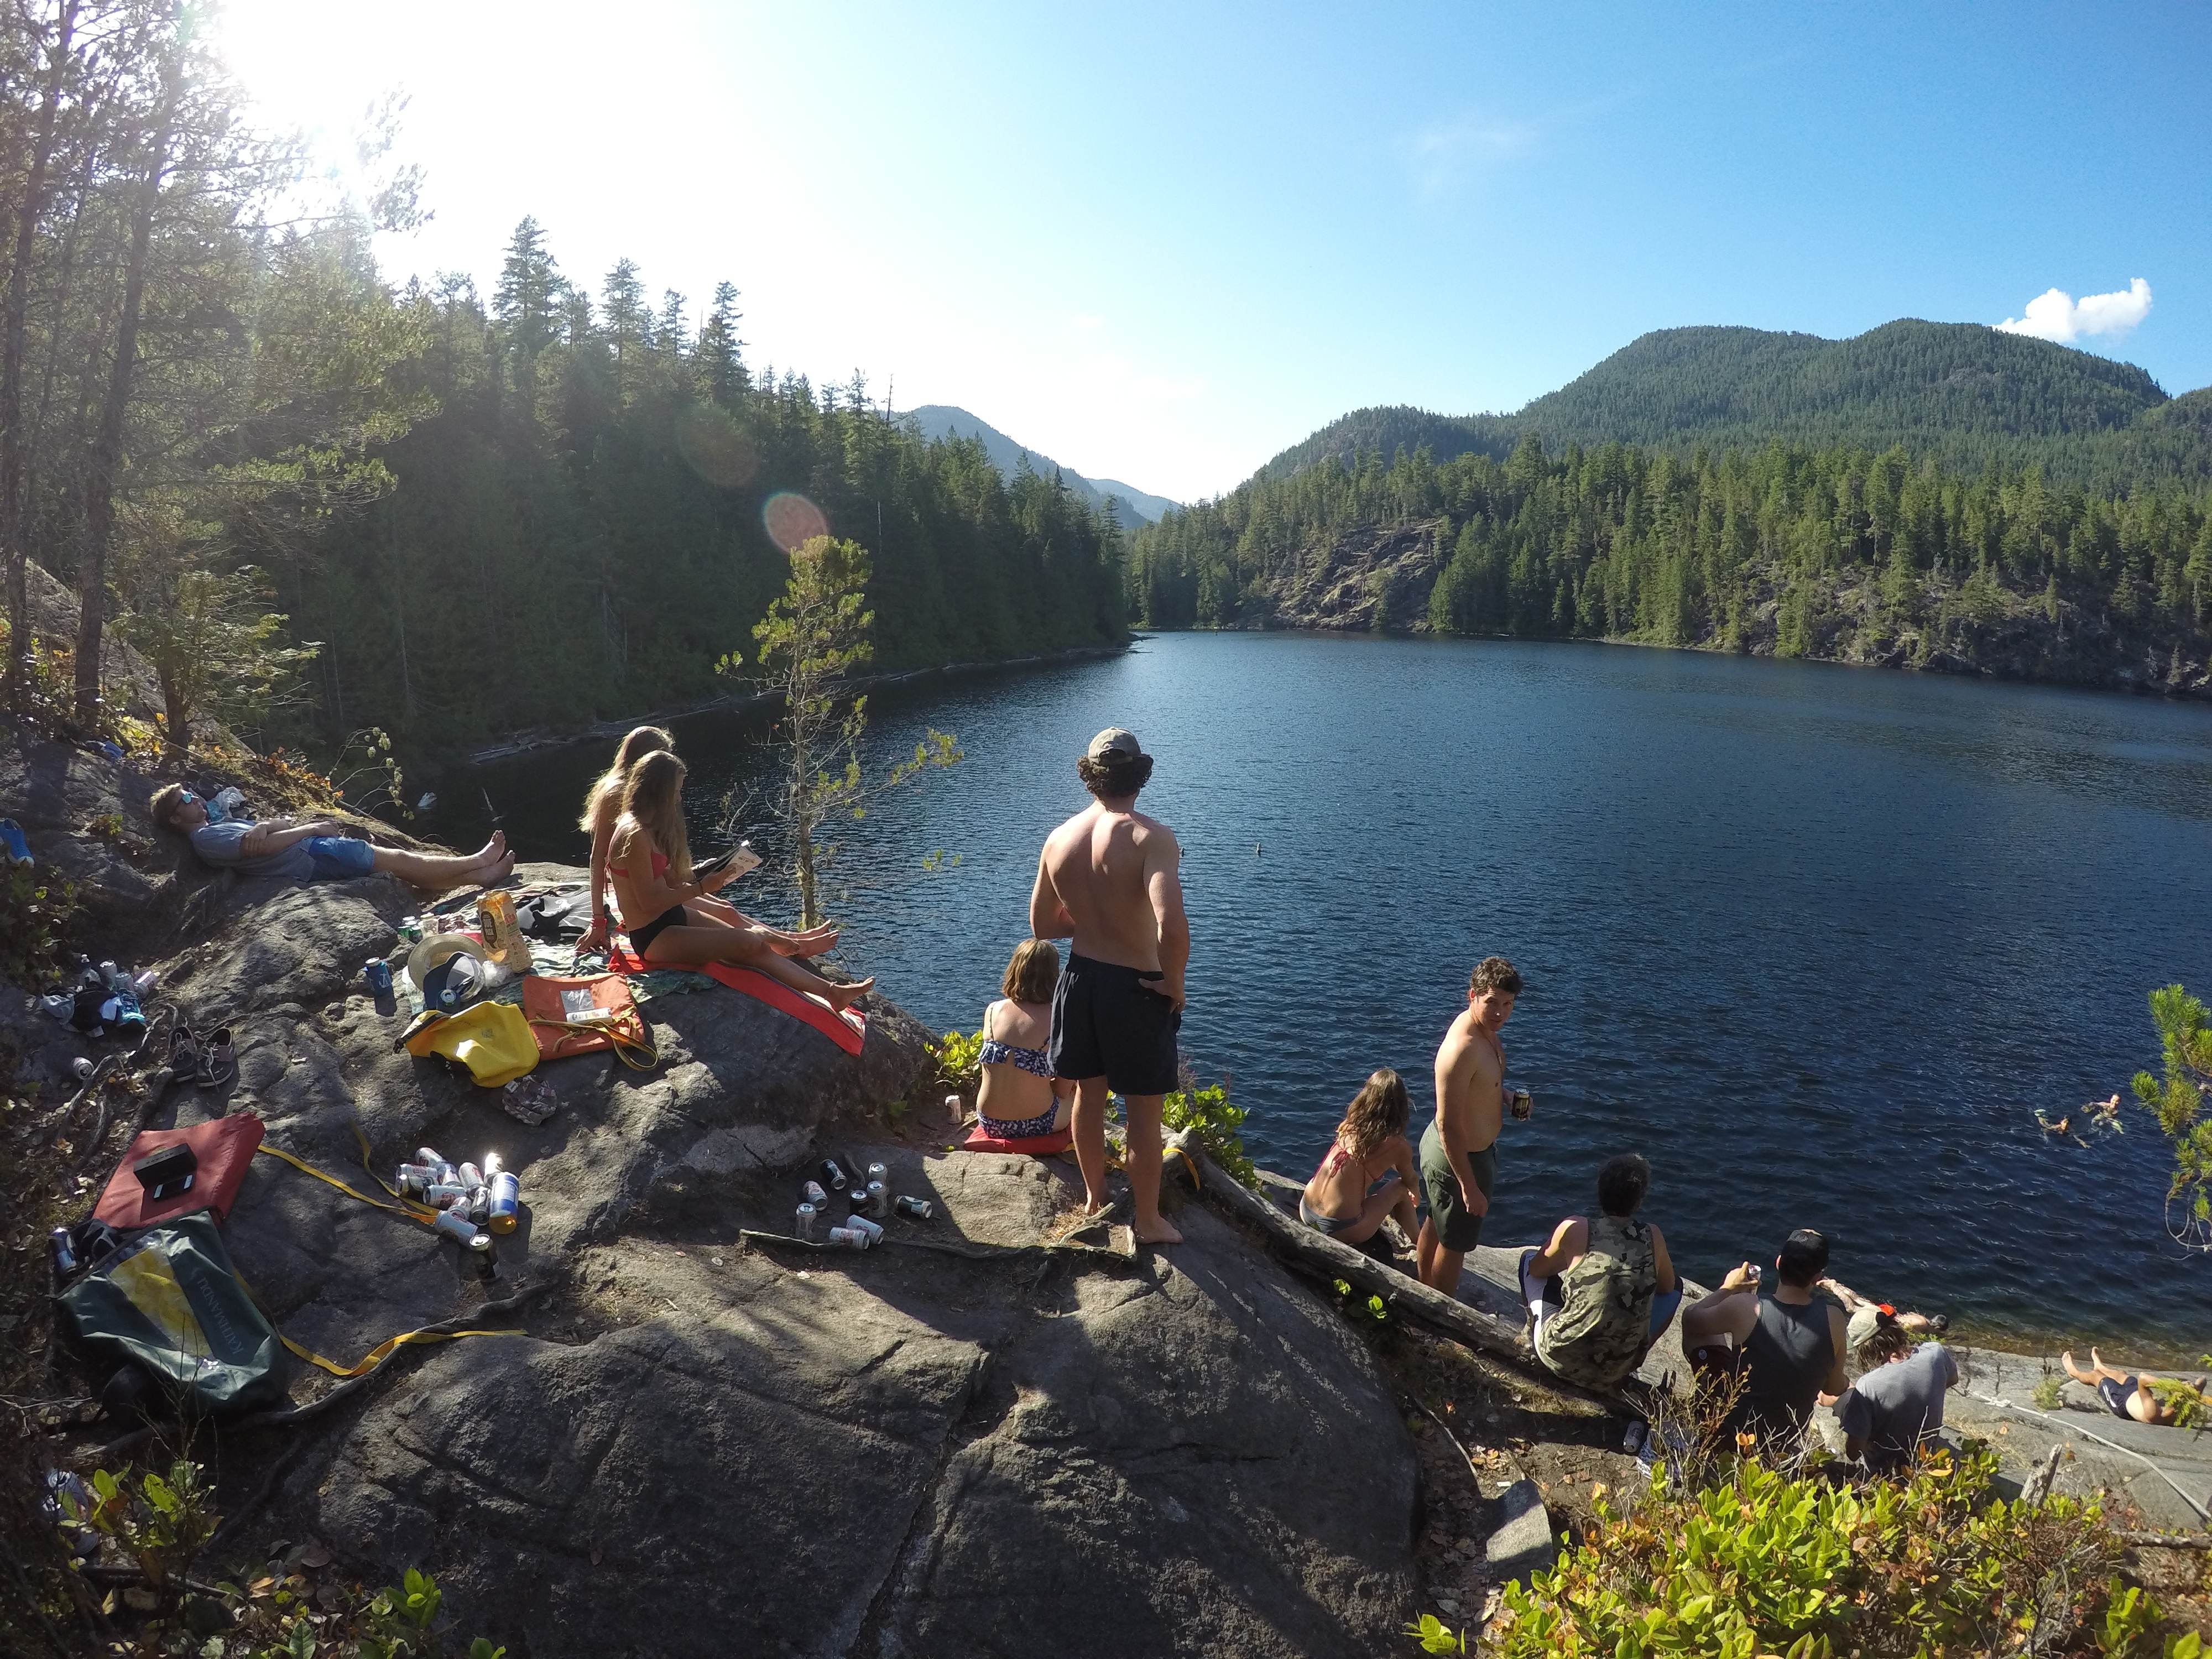 Group afternoon at Cassel Lake. The kiwis hiked in some chilly bins full of beer. What industrious young men.